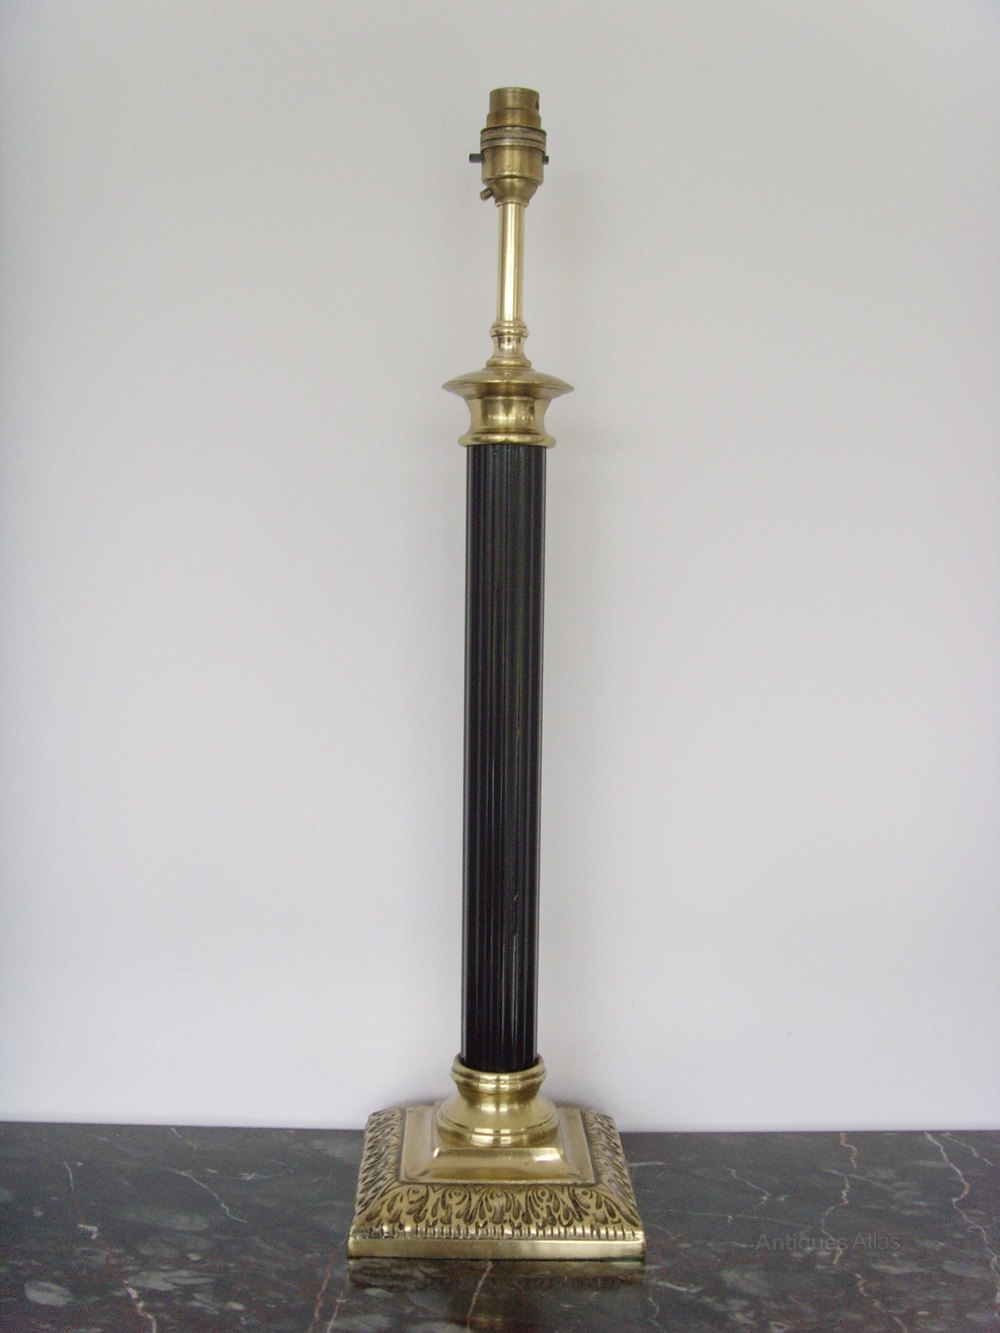 Antiques atlas tall brass doric column table lamp tall brass doric column table lamp geotapseo Choice Image